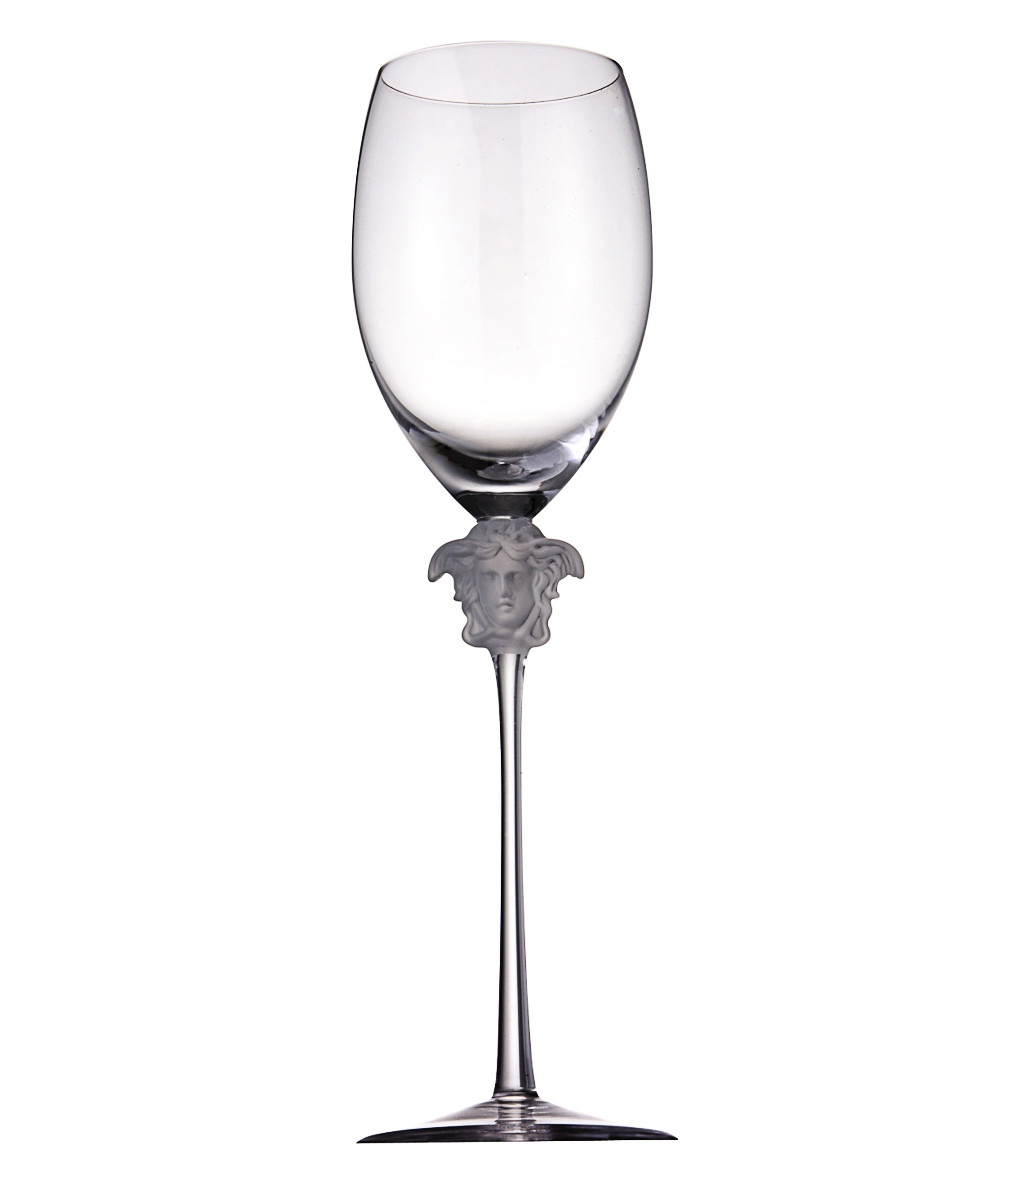 waterford lismore 8 crystal vase of glasses in medusa lumiere white wine 2pc set